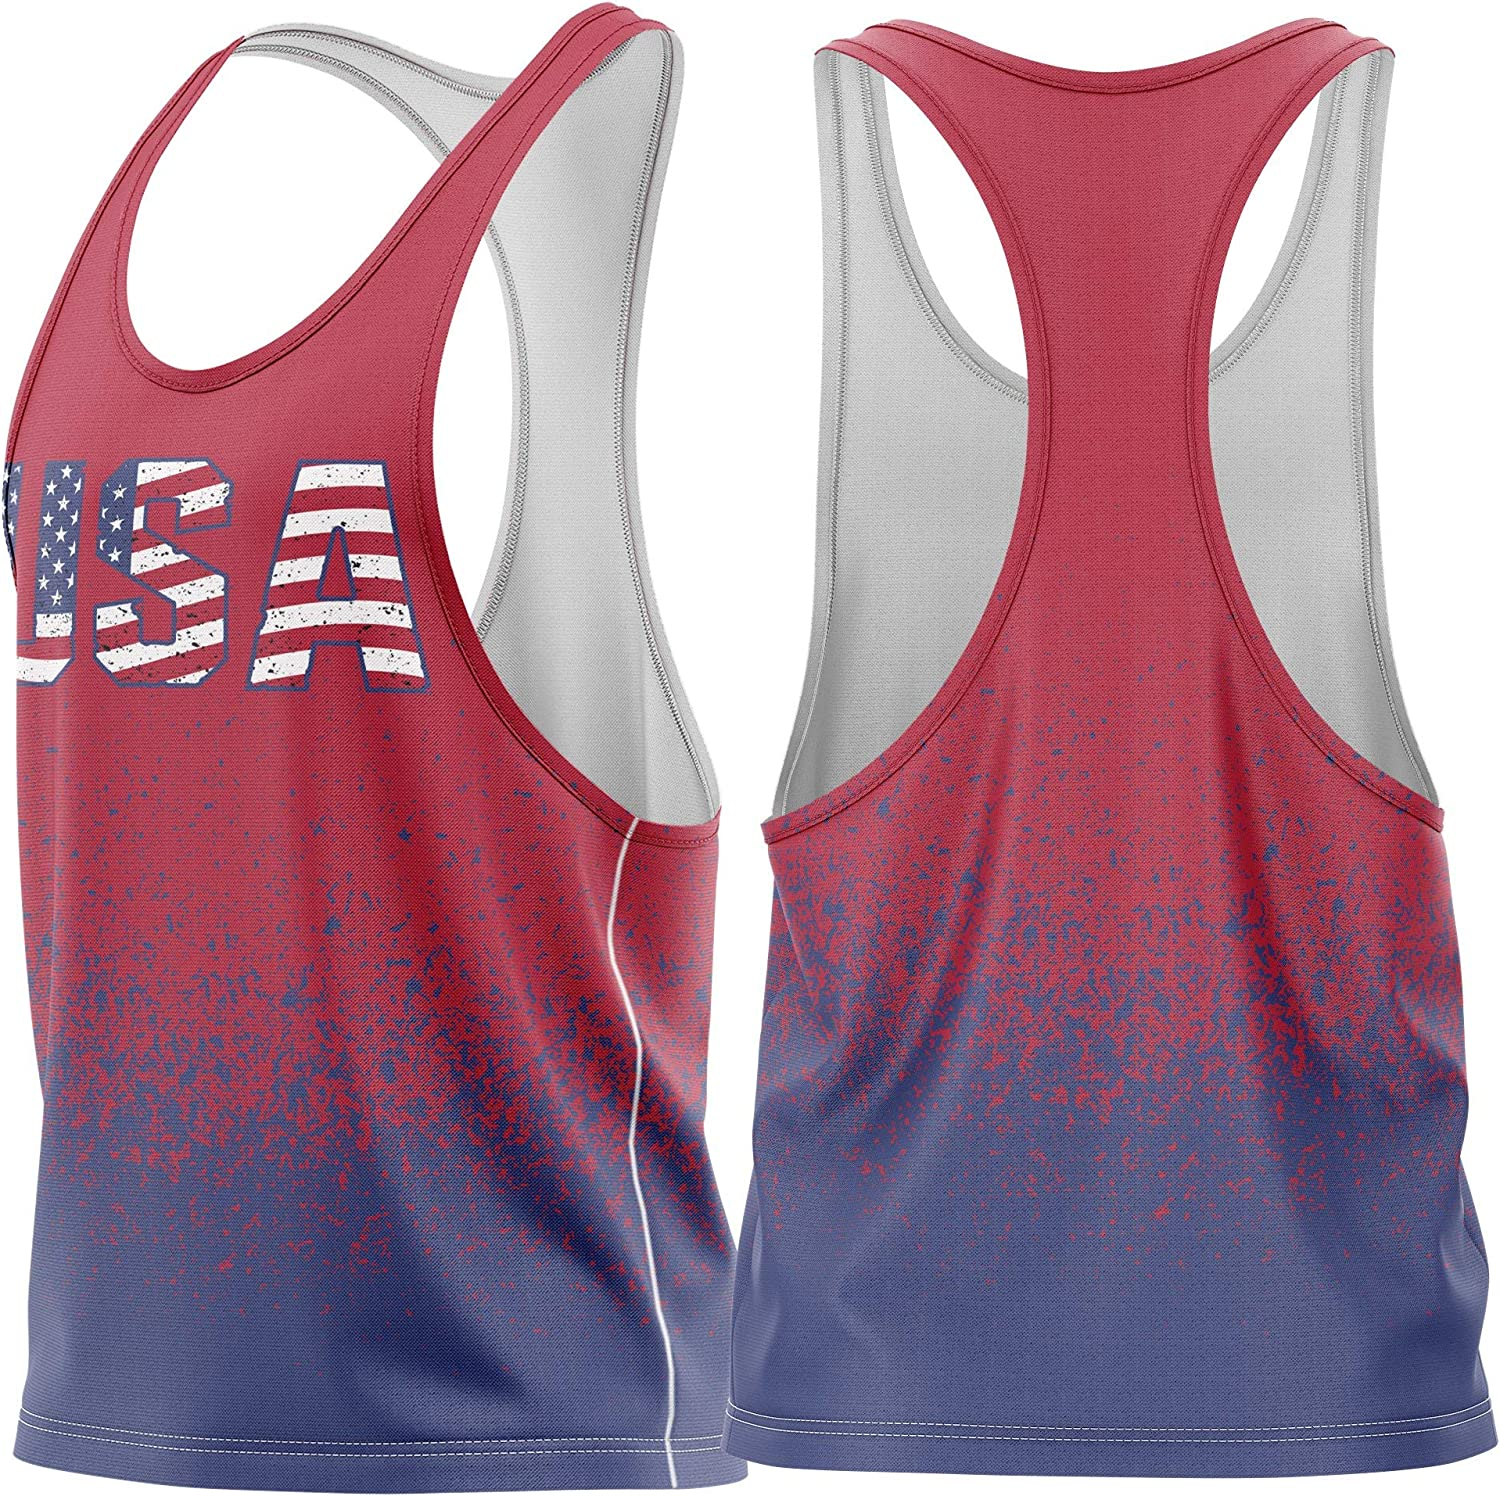 MyProtein Tank Top Stringer Tank Top Men/'s Muscle Shirt Training Clothes